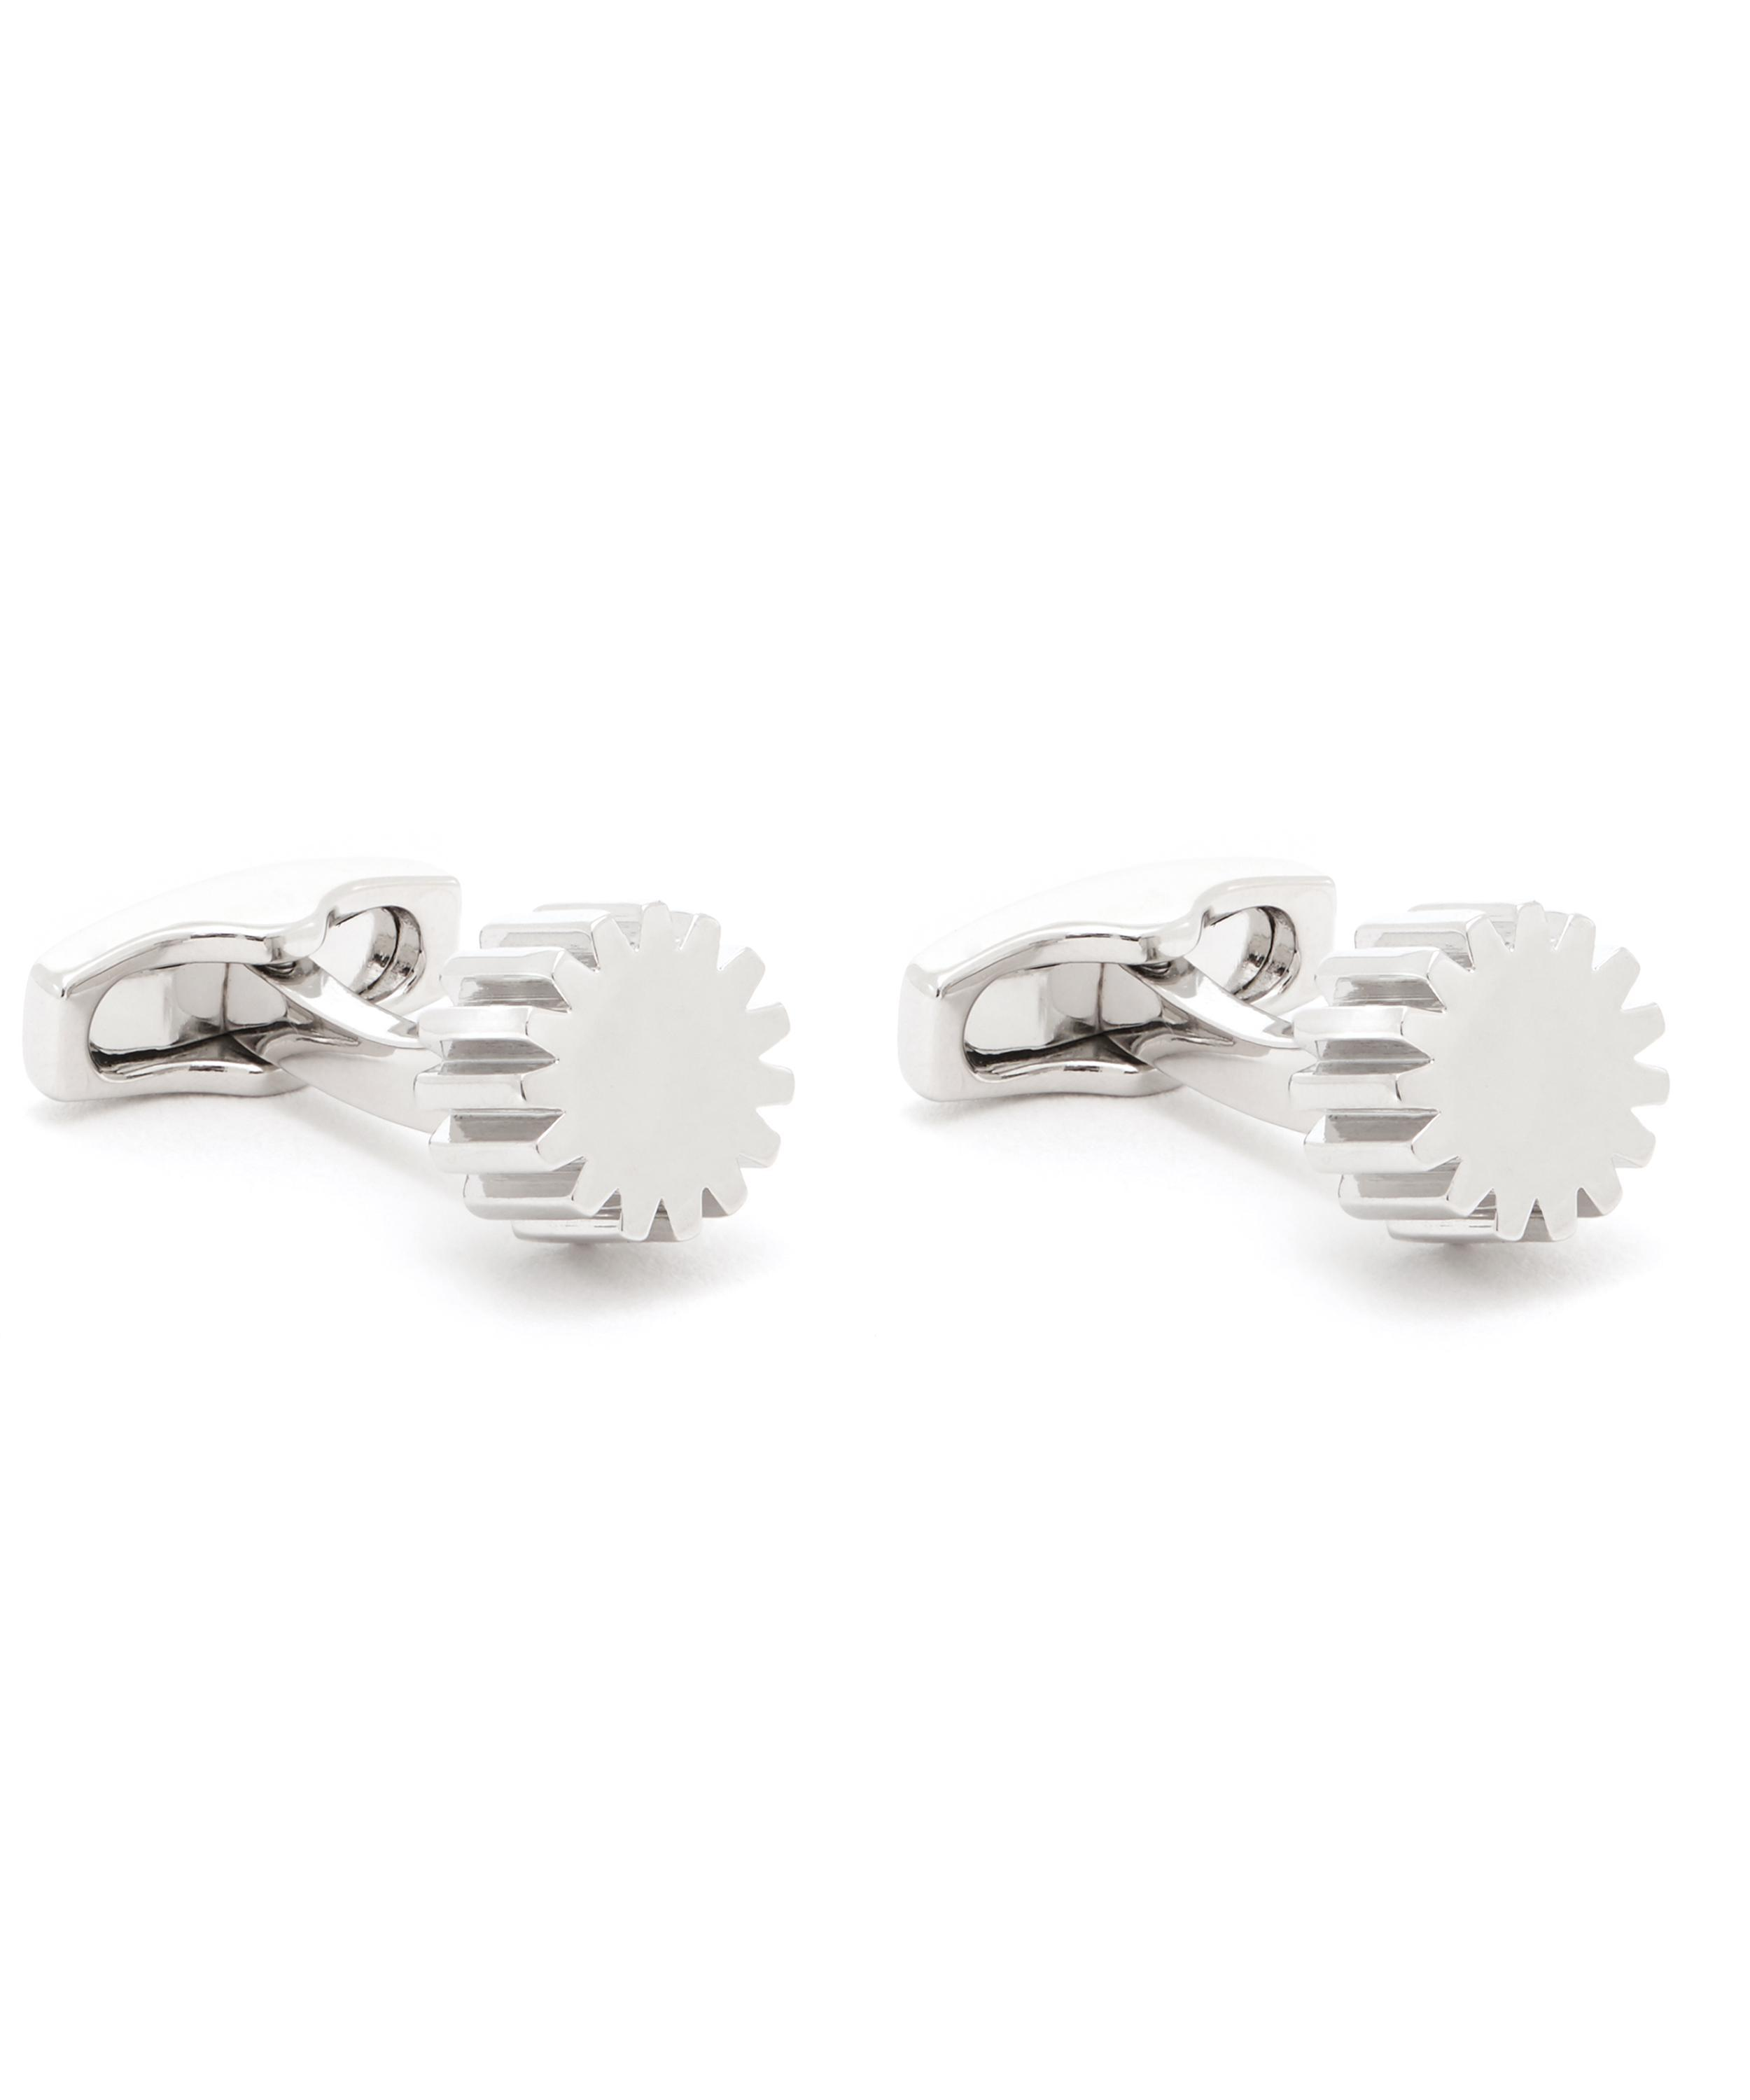 0f025a1a0 Simon Carter Cog Cufflinks in Metallic for Men - Lyst